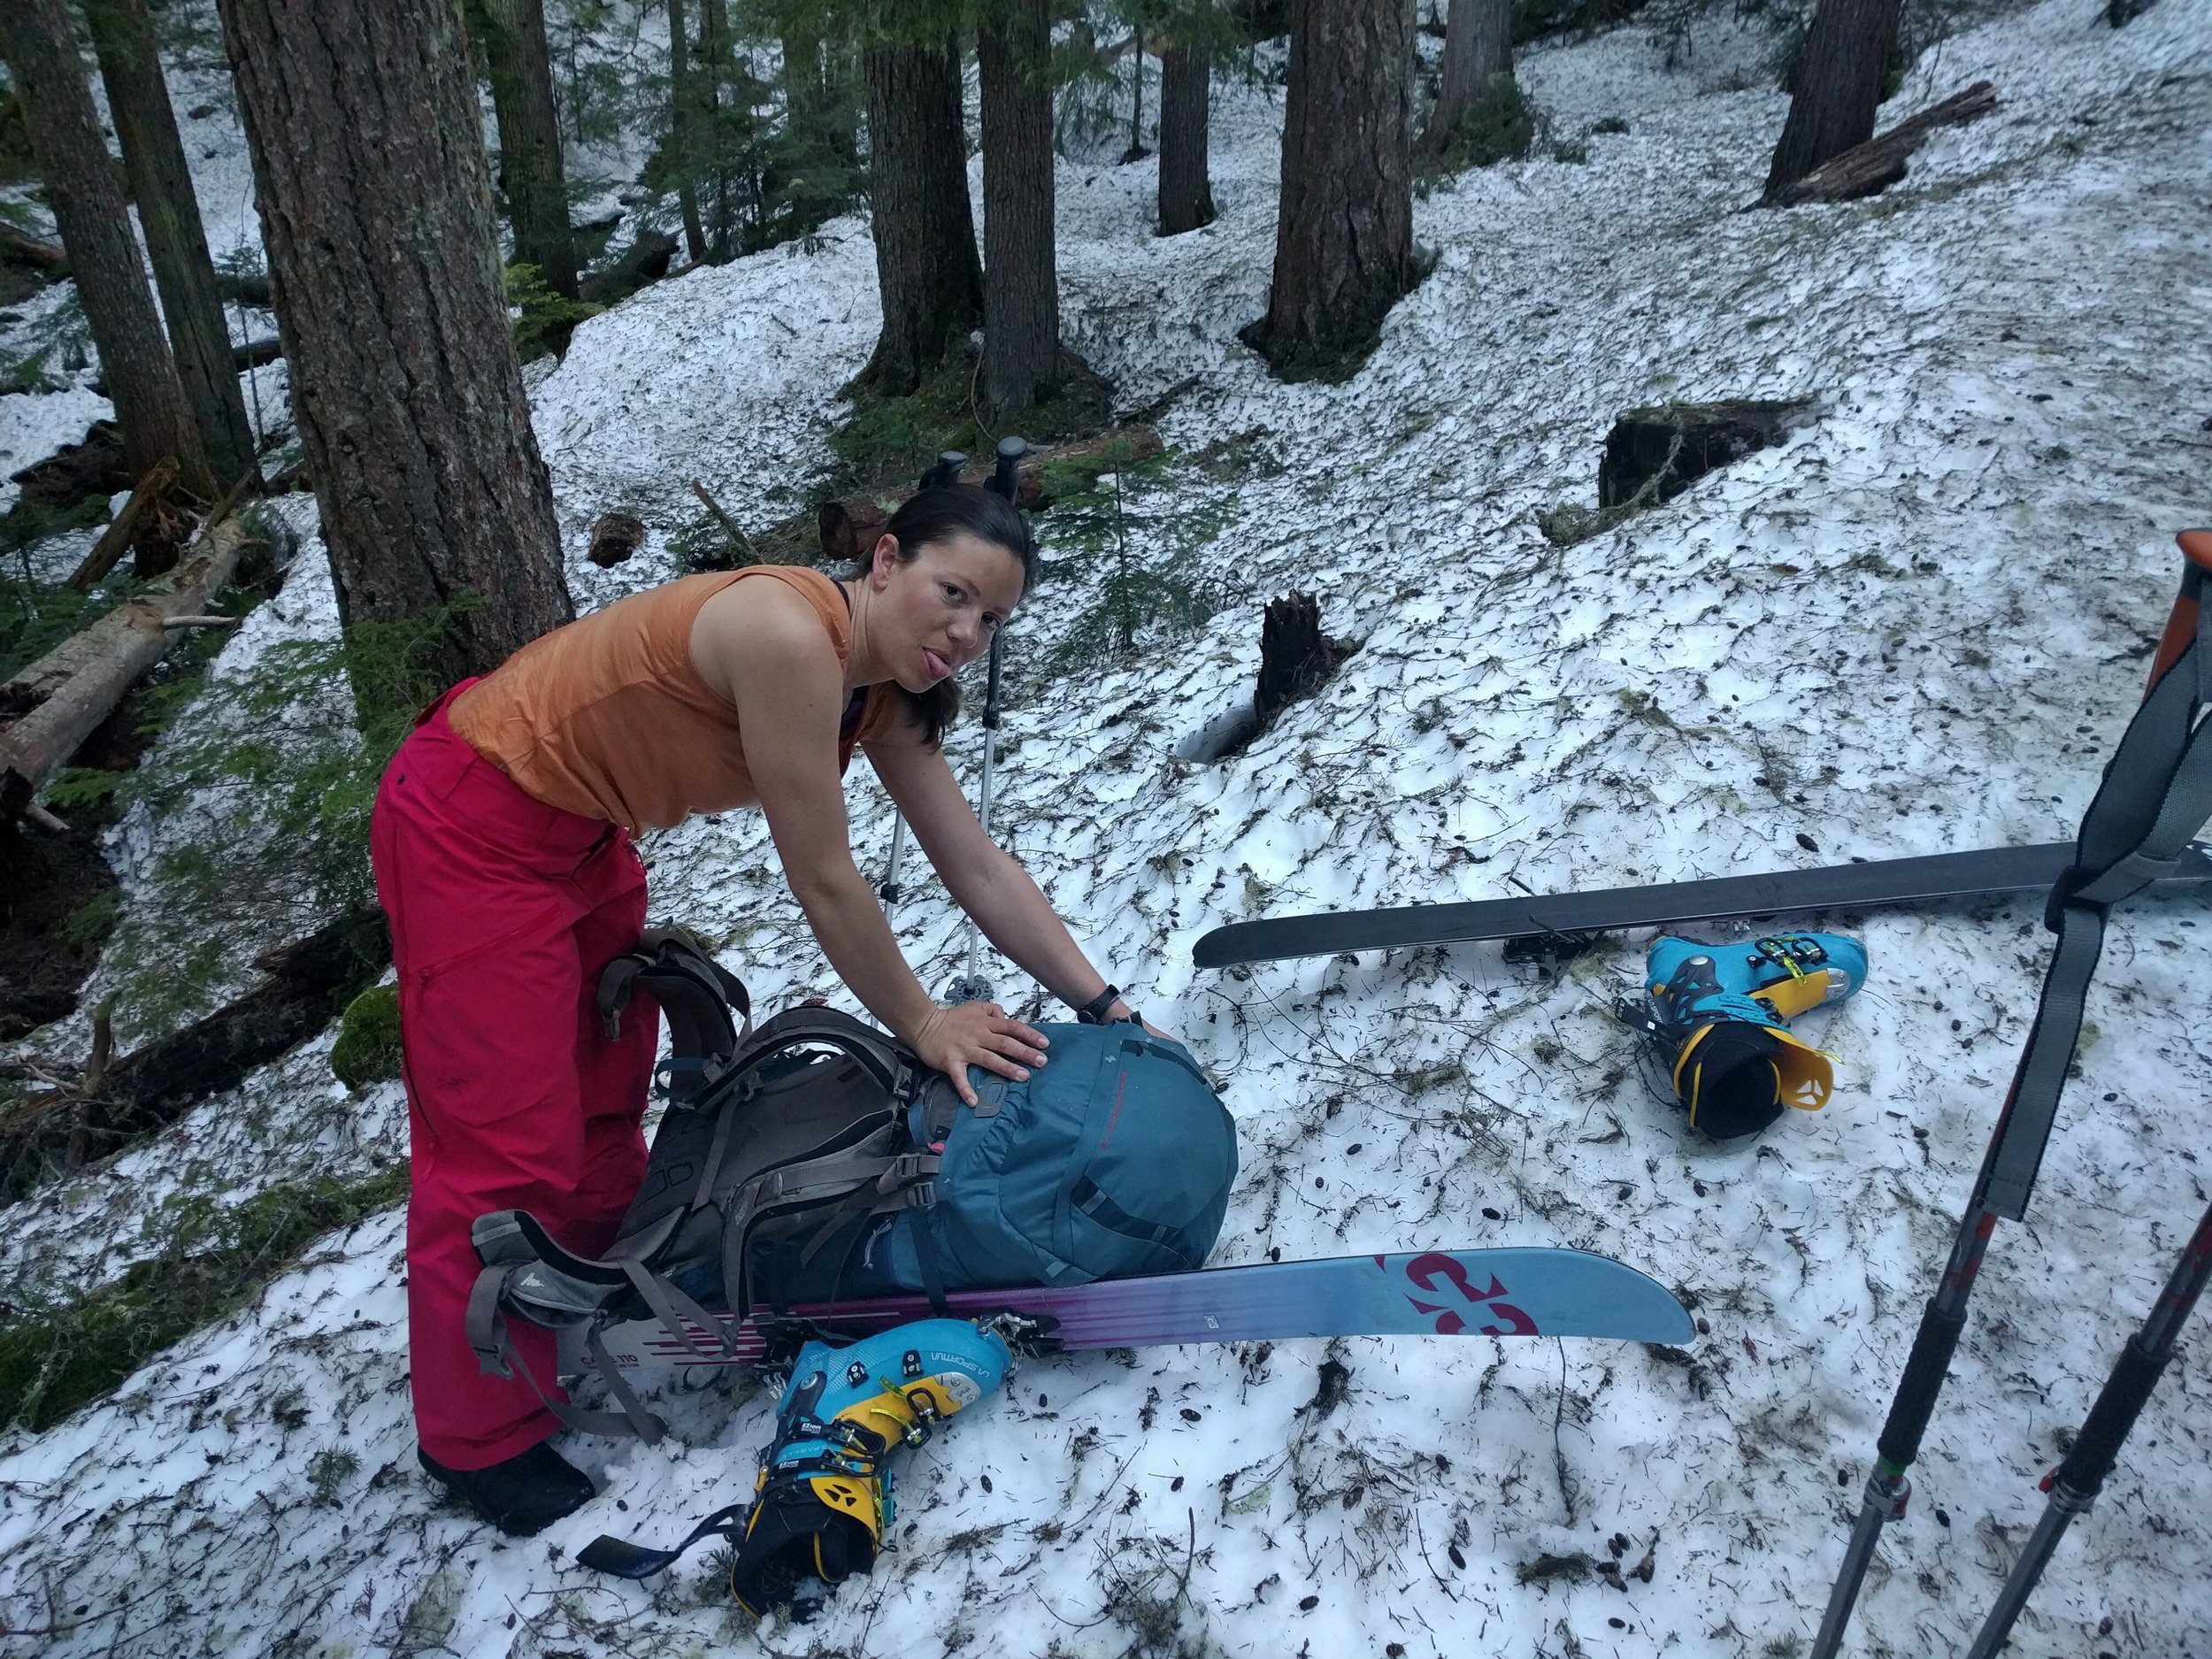 Christine, happy to finally be able to put her skis on in that virgin snow...